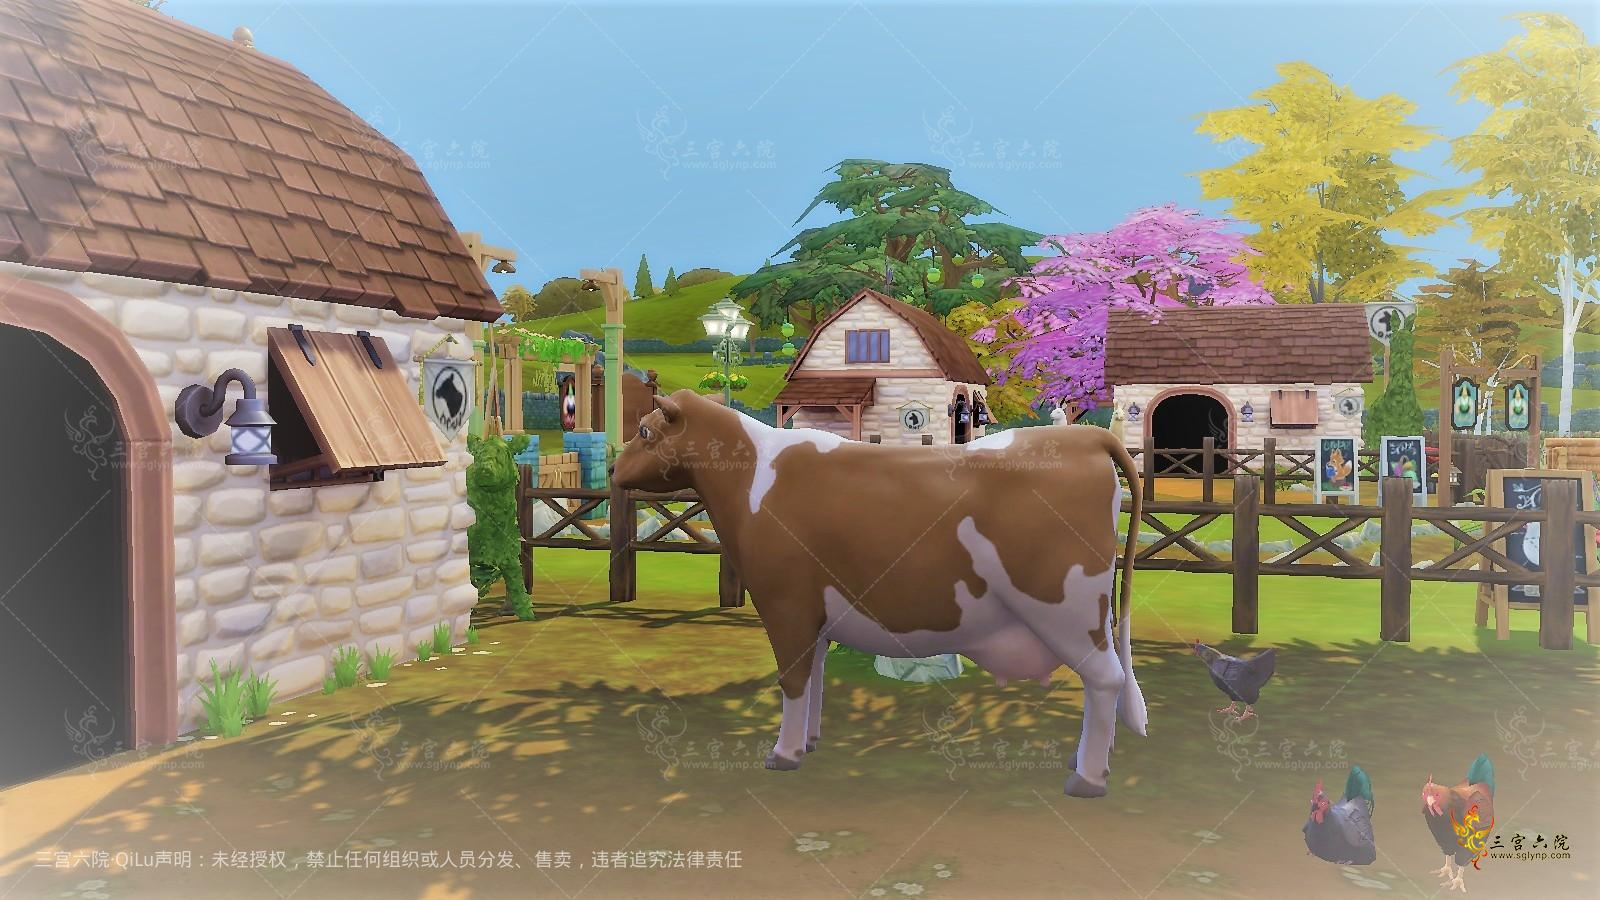 The Sims 4 2021_8_22 8_36_23.png